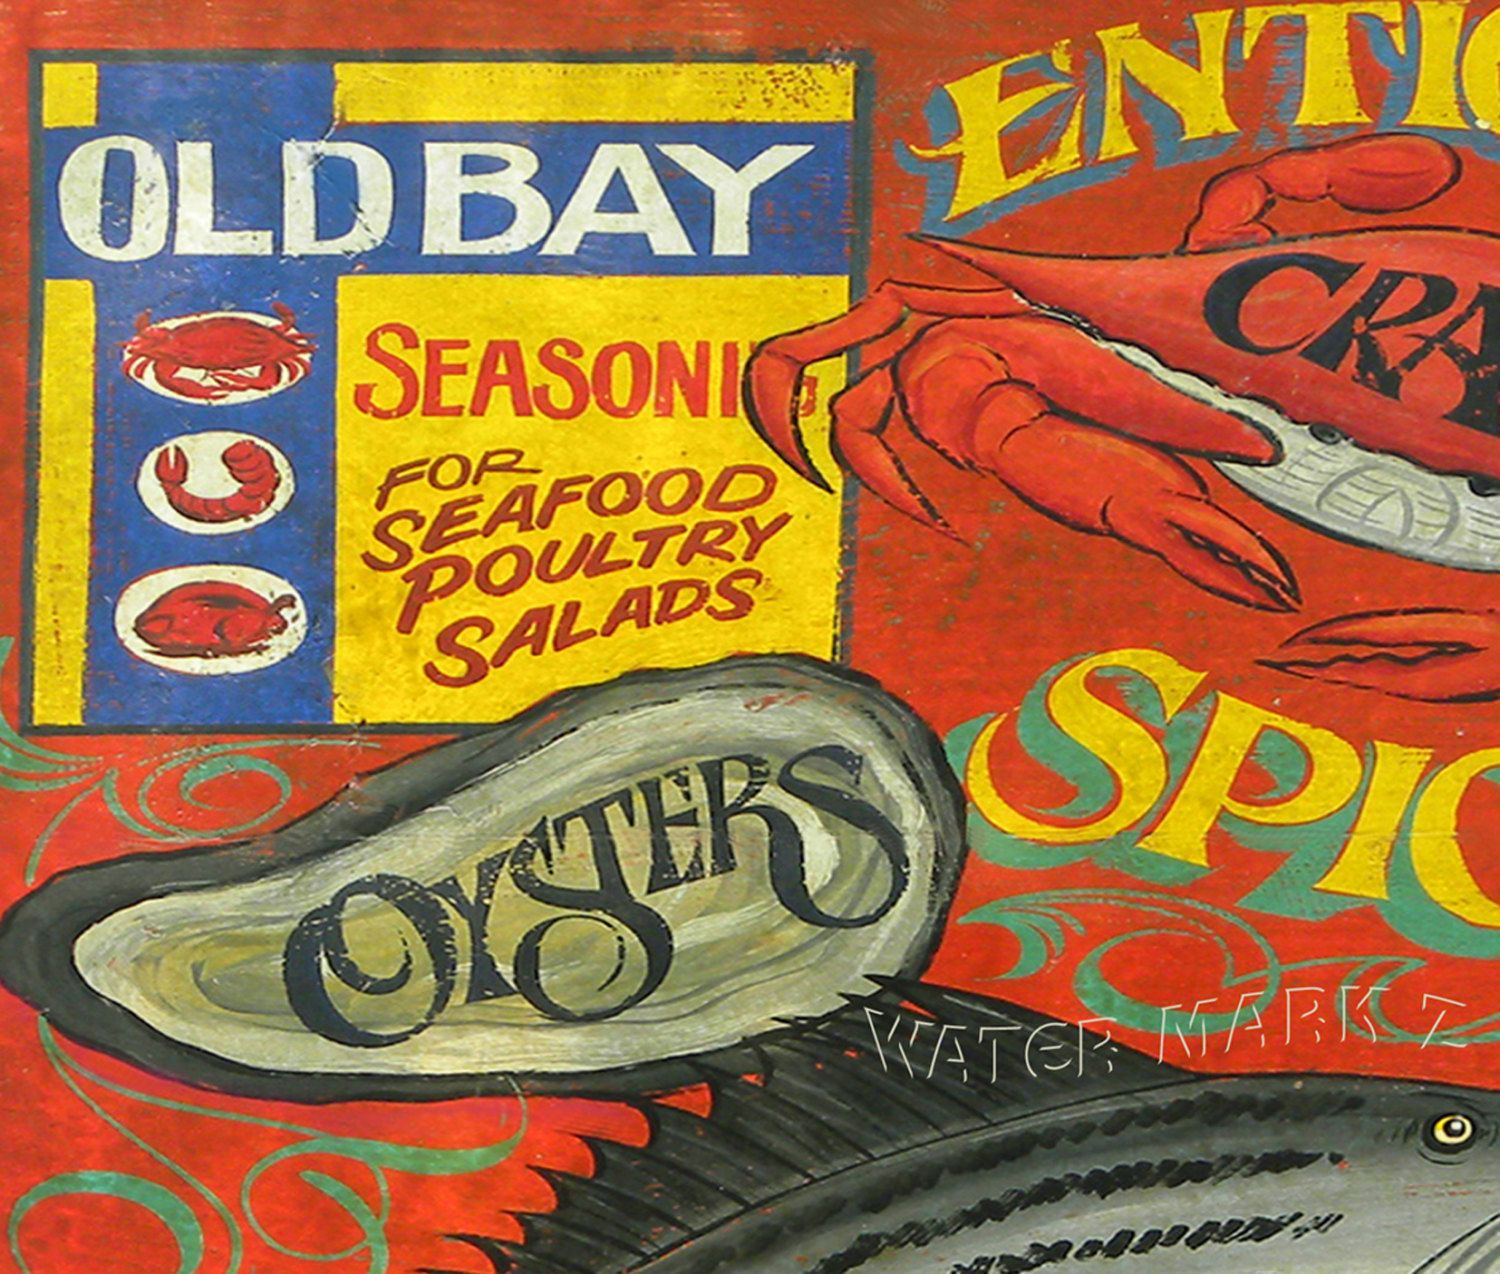 Cajun Kitchen Decor Old Bay Seafood Print With Mat Art Kitchen Decor Wall Hanging